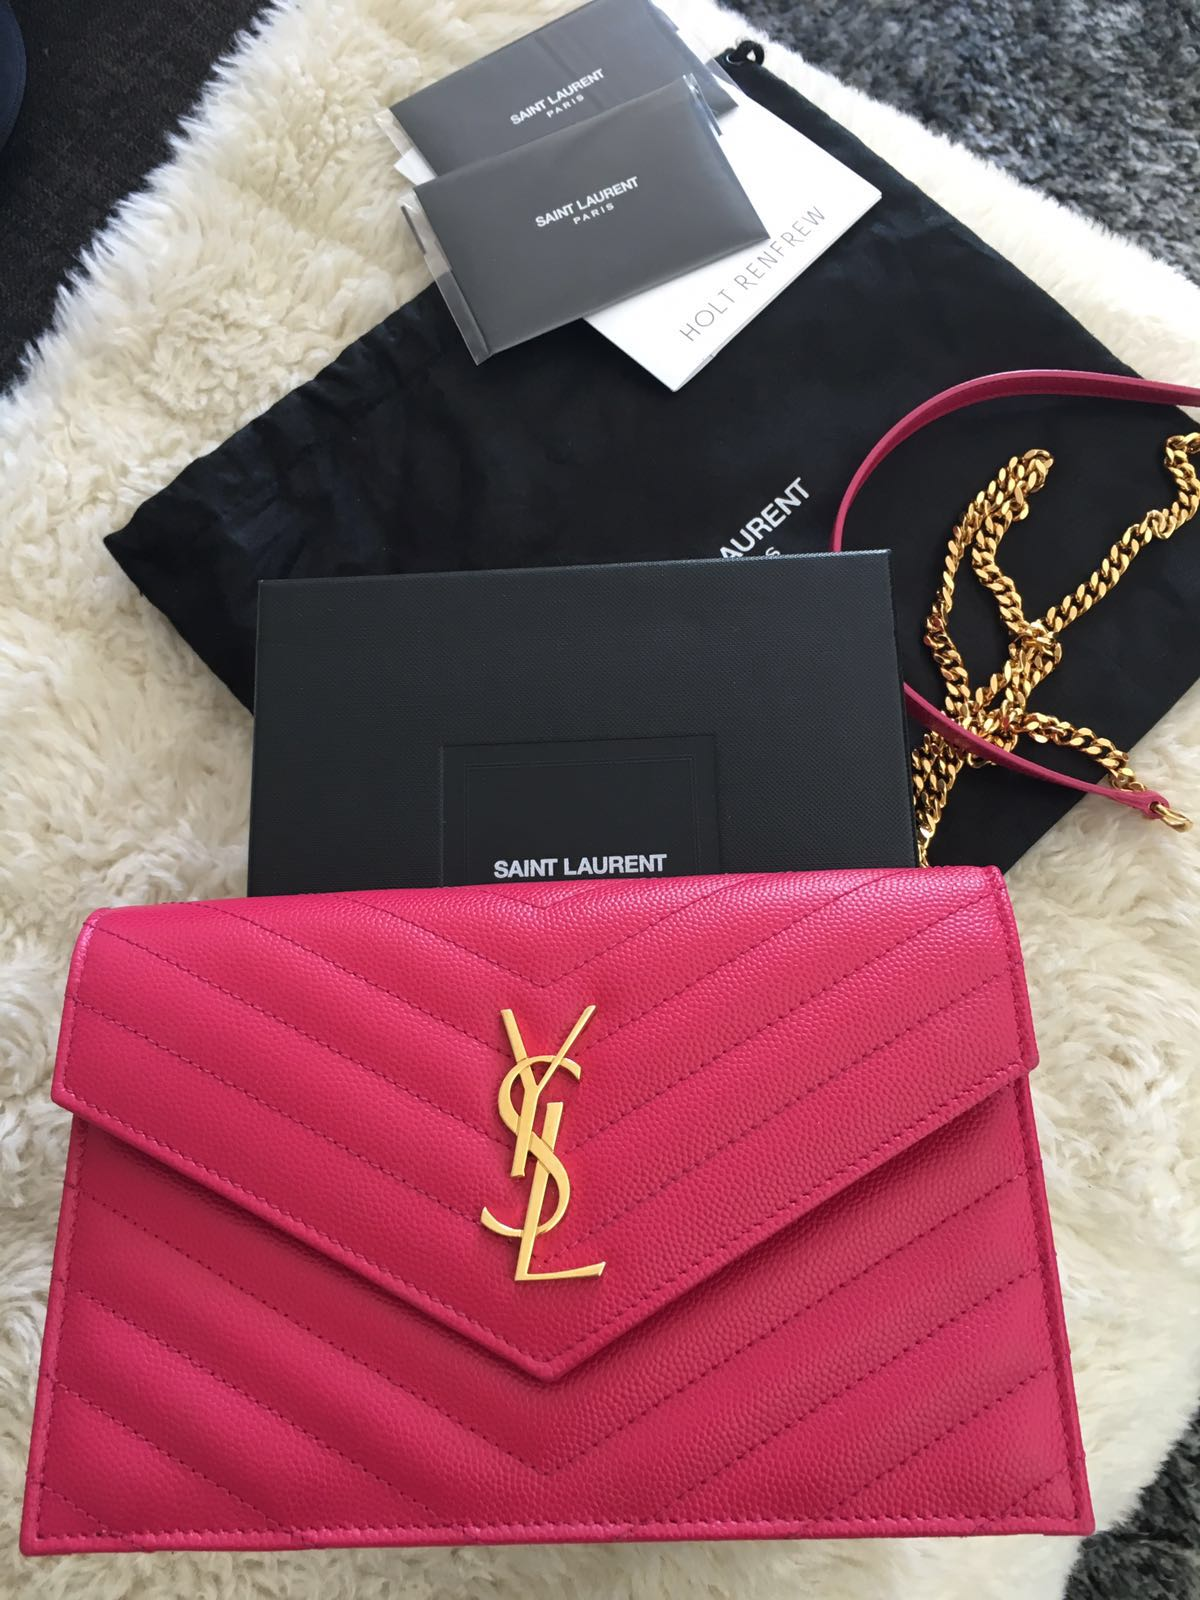 6cd6732a $1500 Yves Saint Laurent Paris Pink Leather Chevron Wallet on Chain ...